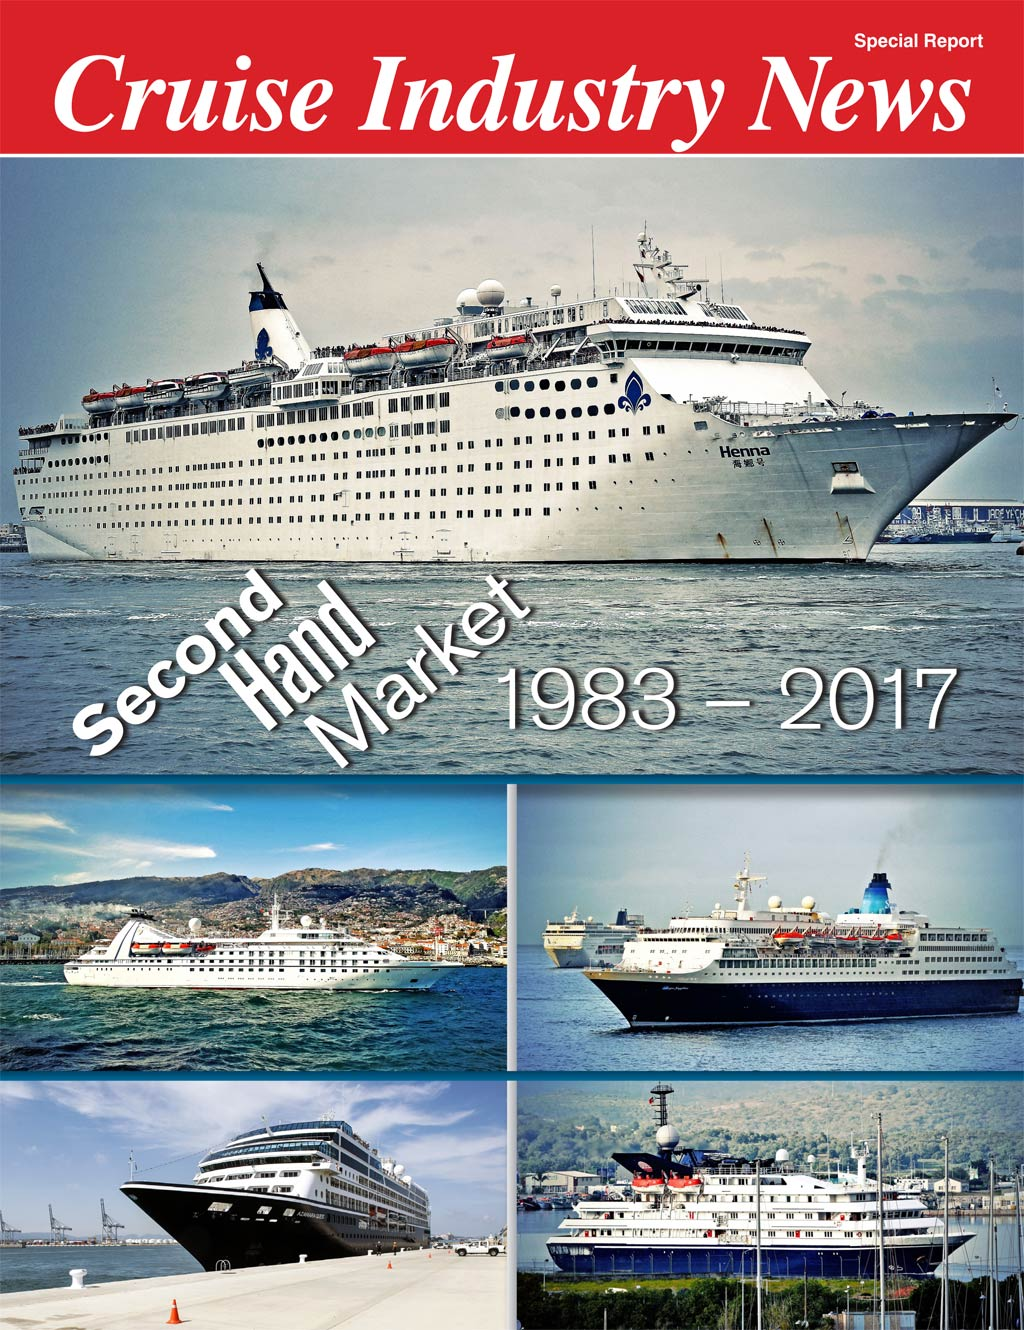 Secondhand Market Cruise Industry News Cruise News - History of cruise ship industry